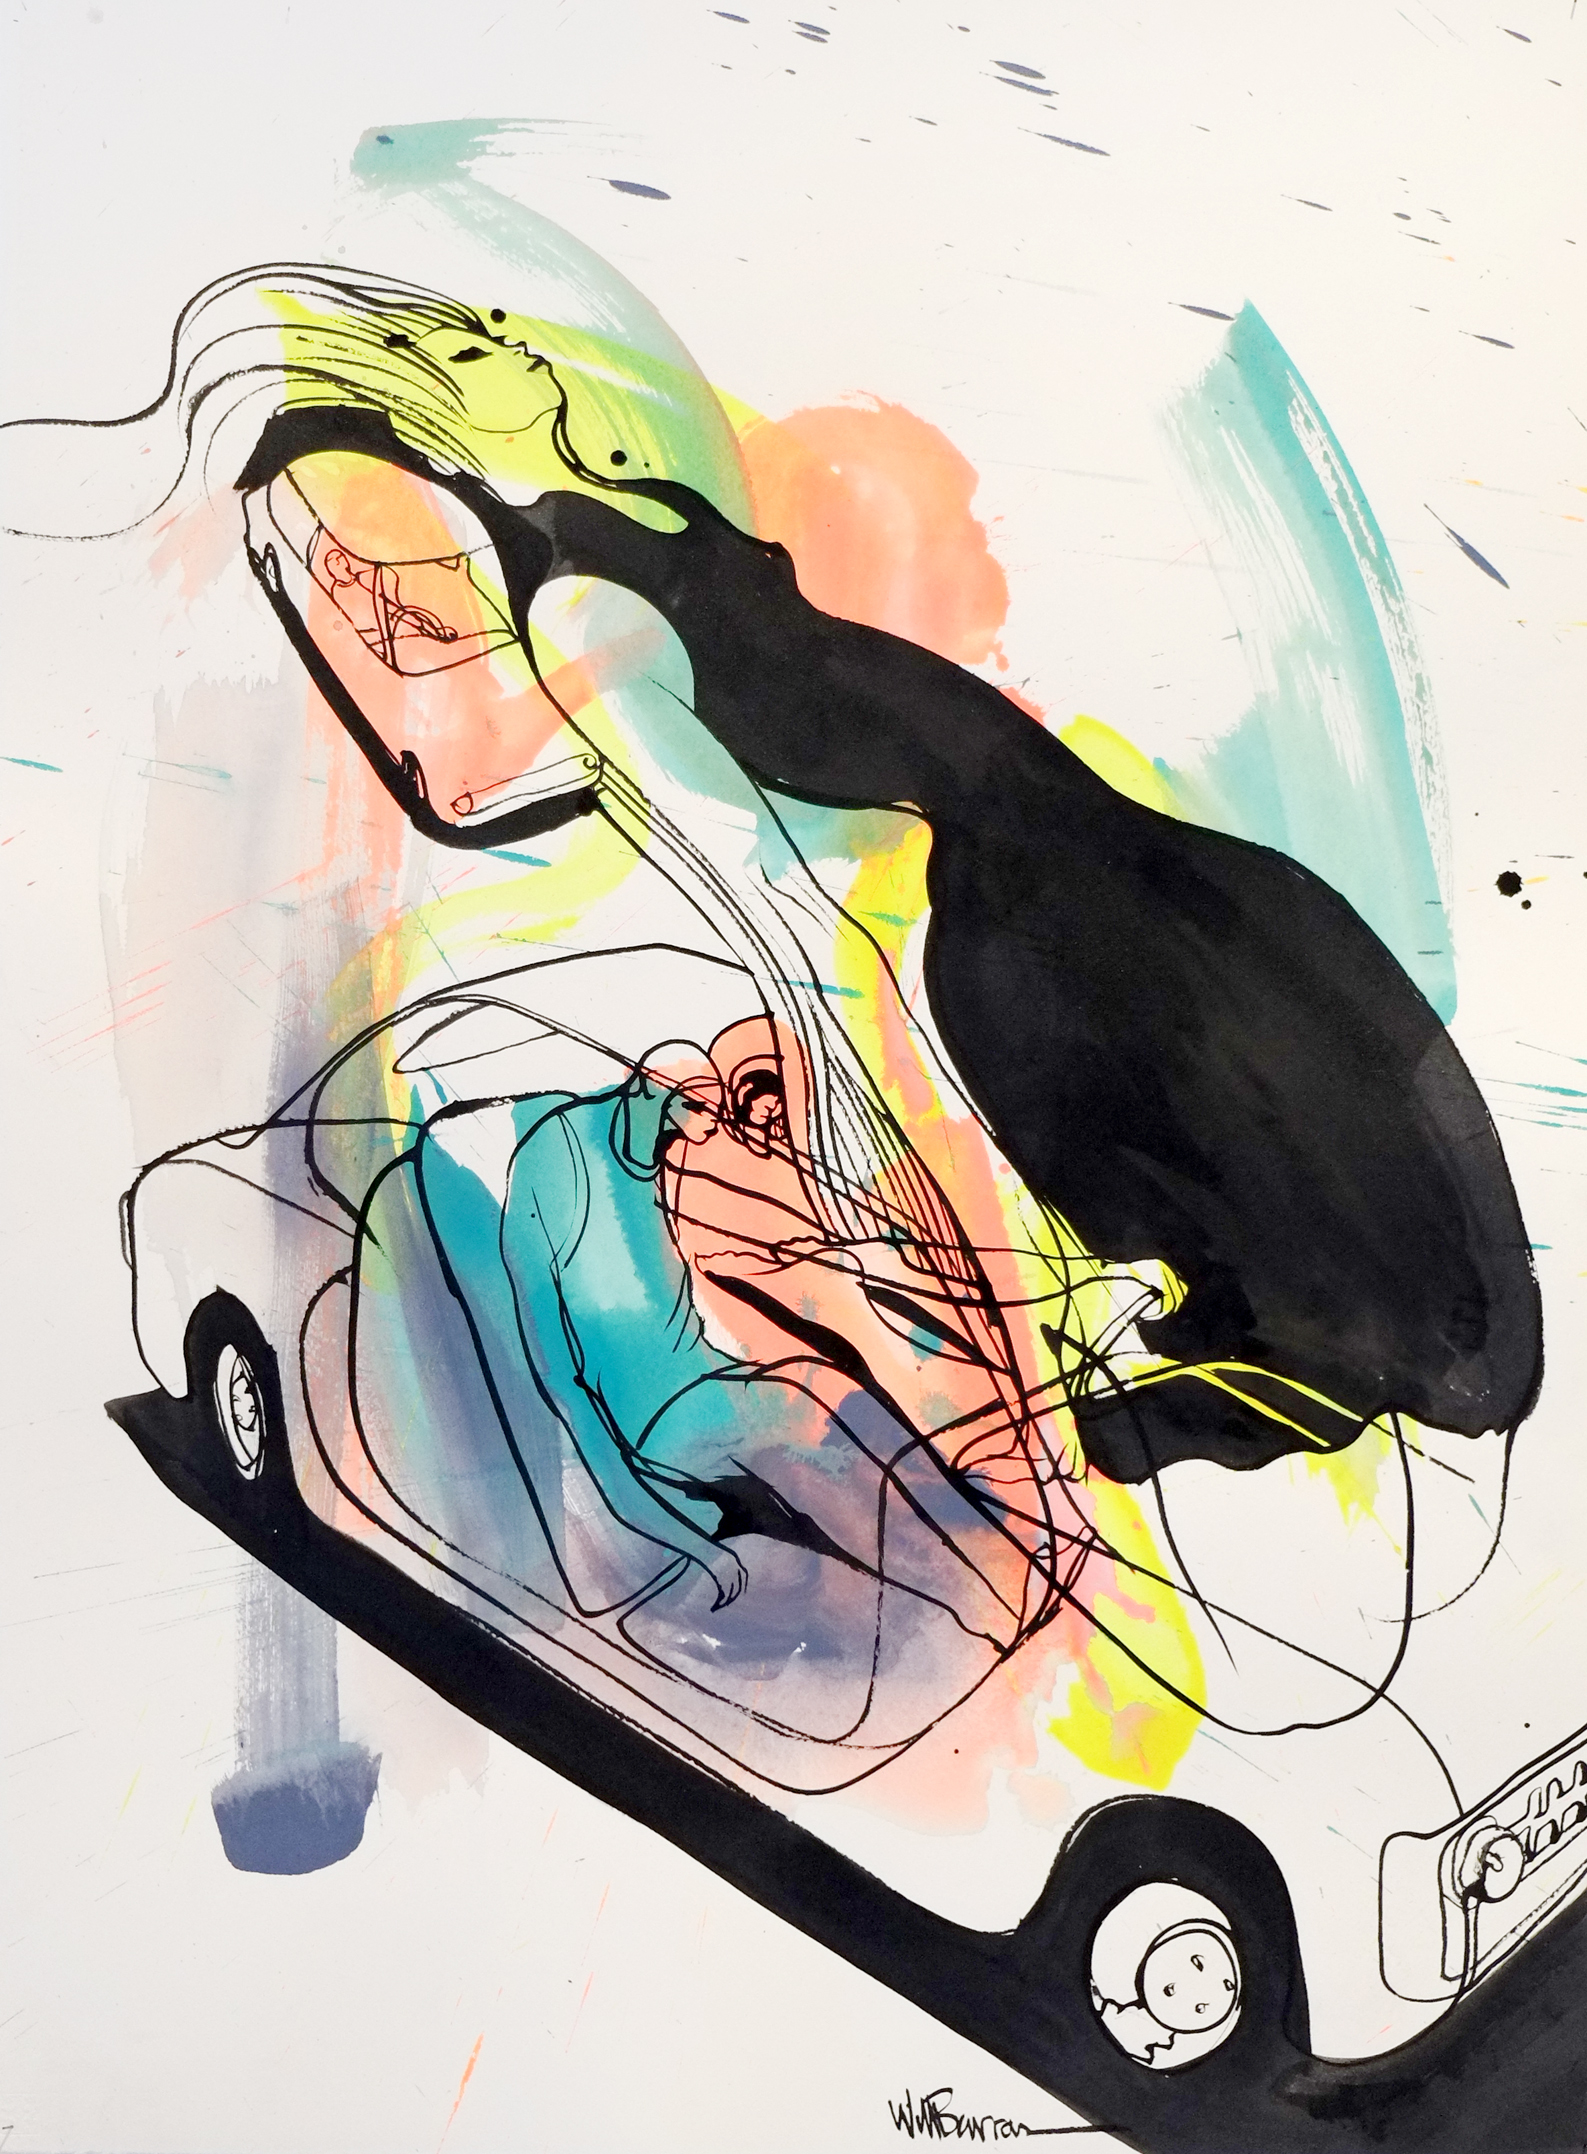 Will Barras - Original Drawings - acrylic and indian ink on 300gr art paper - 56x76cm - 5.jpg